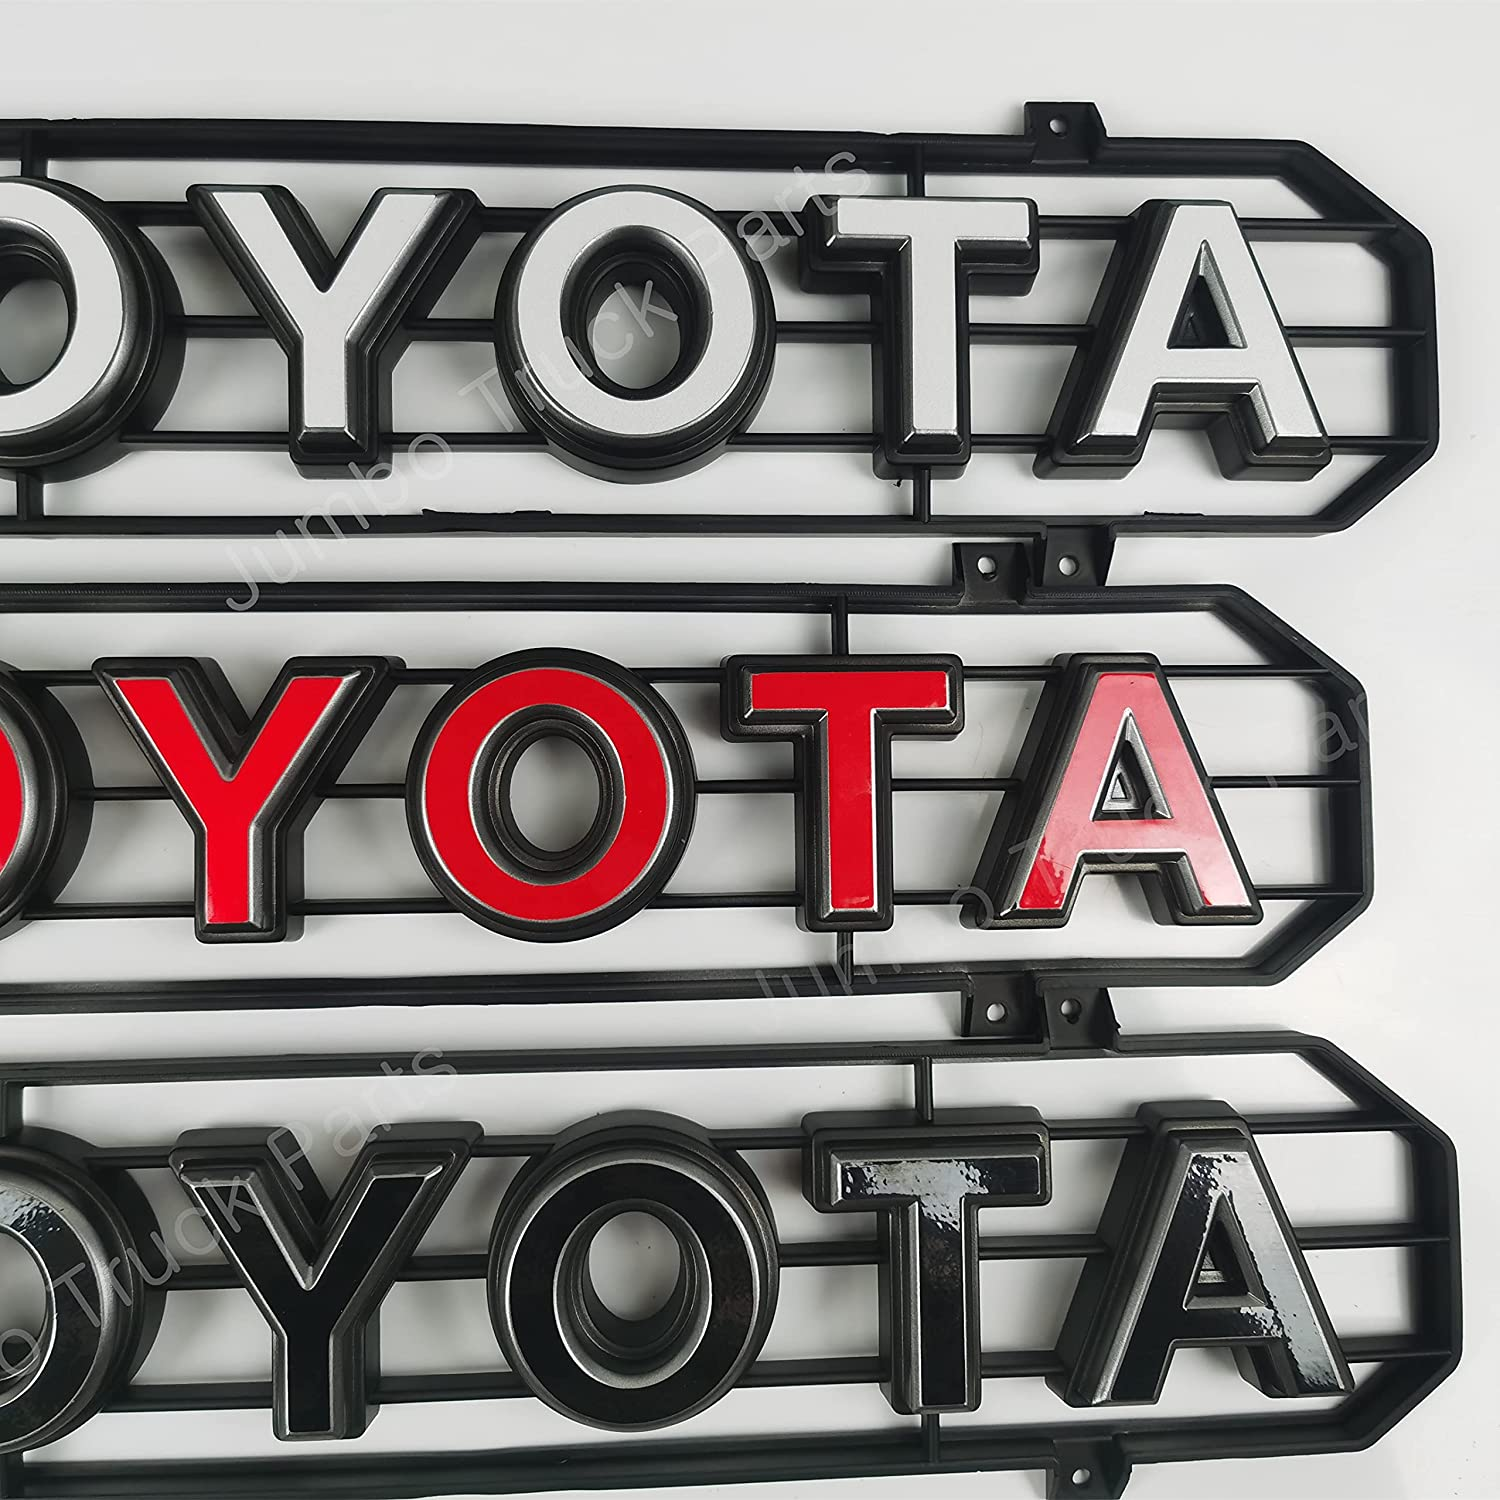 JTP Tacoma Year-end gift TRD Grille Decals Manufacturer direct delivery 3 Fit colors 2016-2021 for